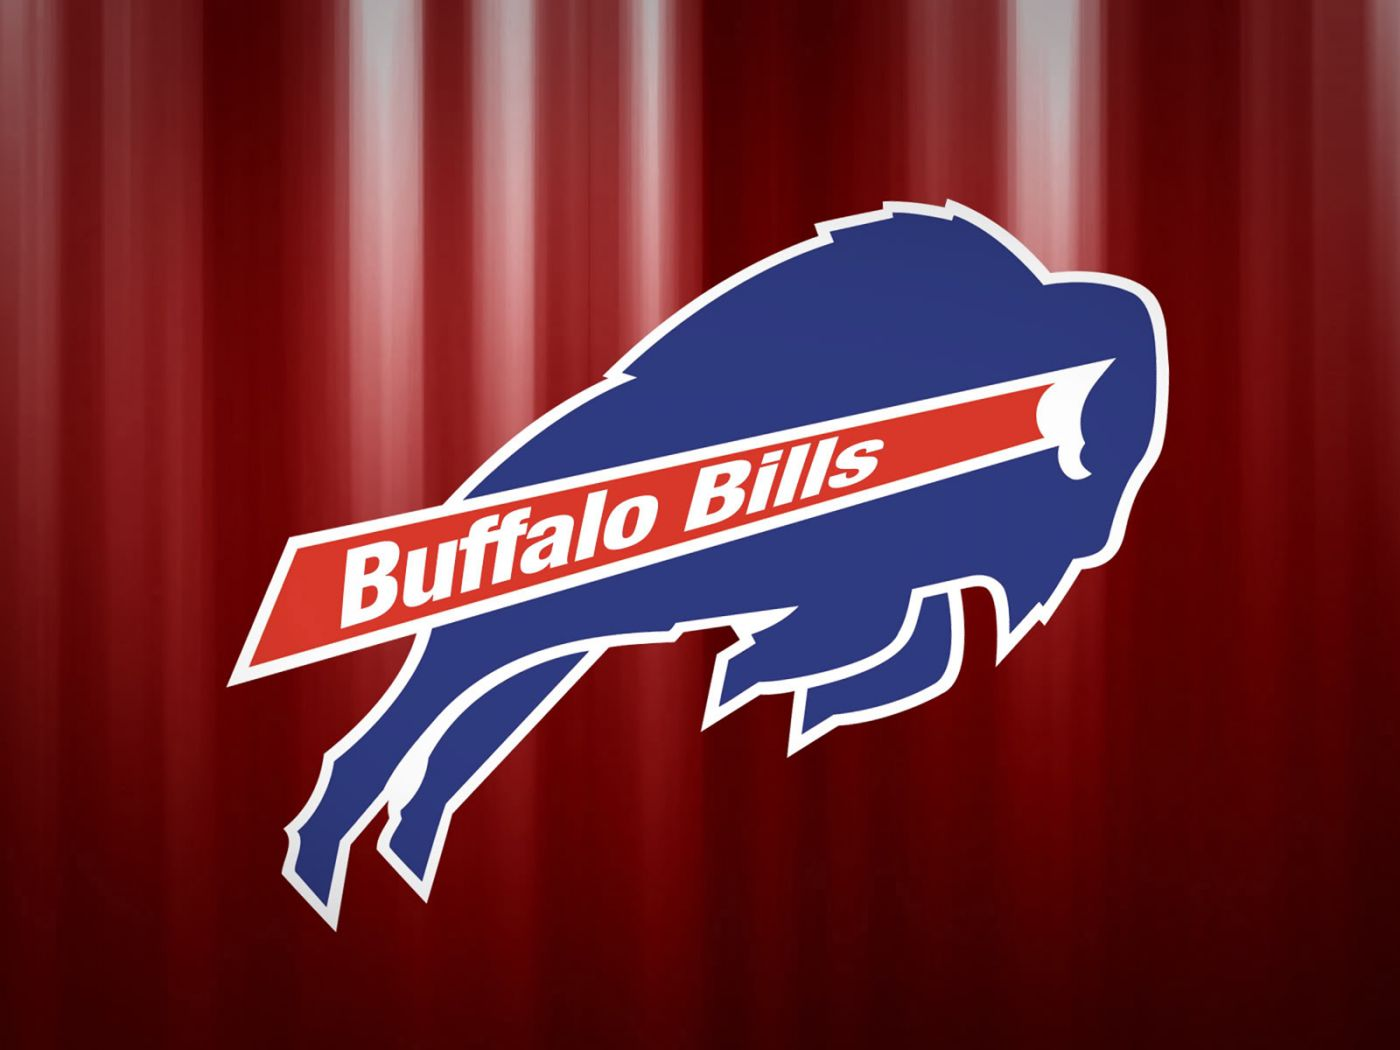 buffalo Bills wallpapers on this page A treat for any bills fan 1400x1050